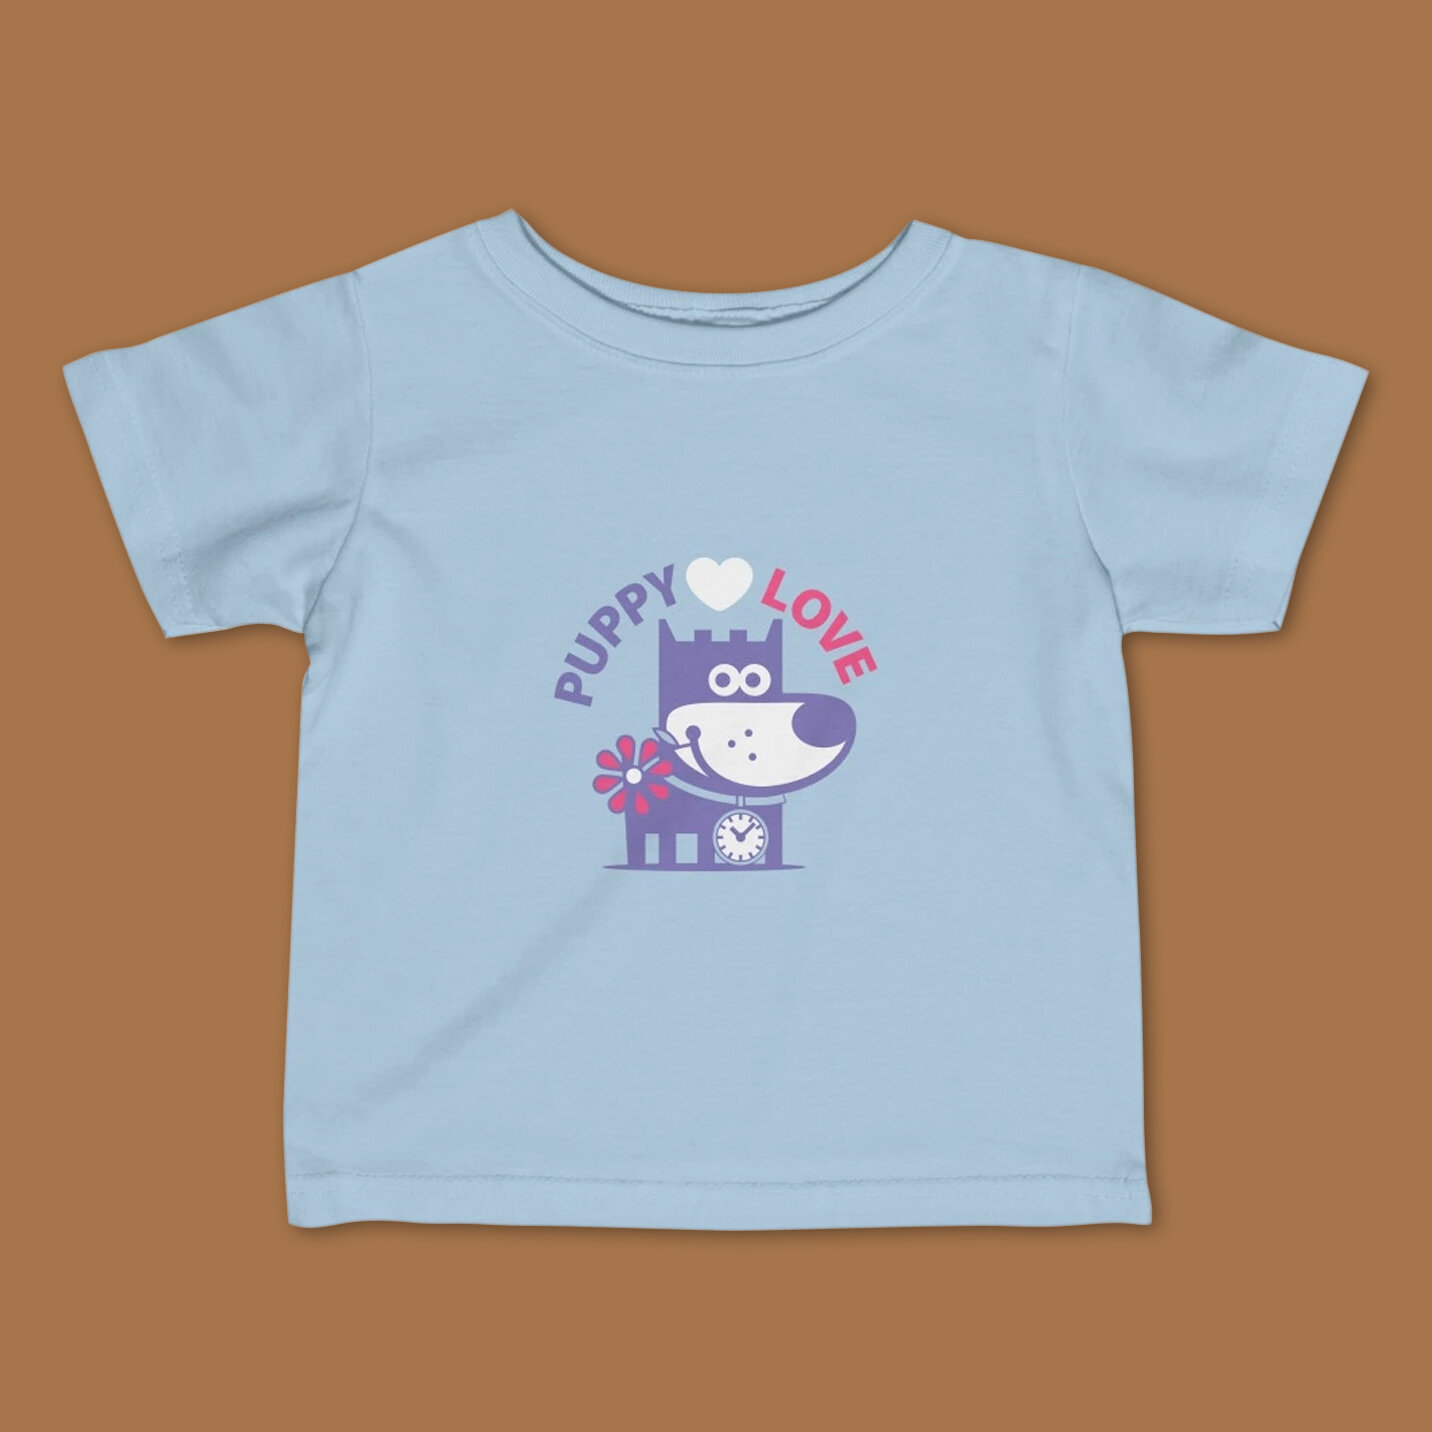 INFANT TEES